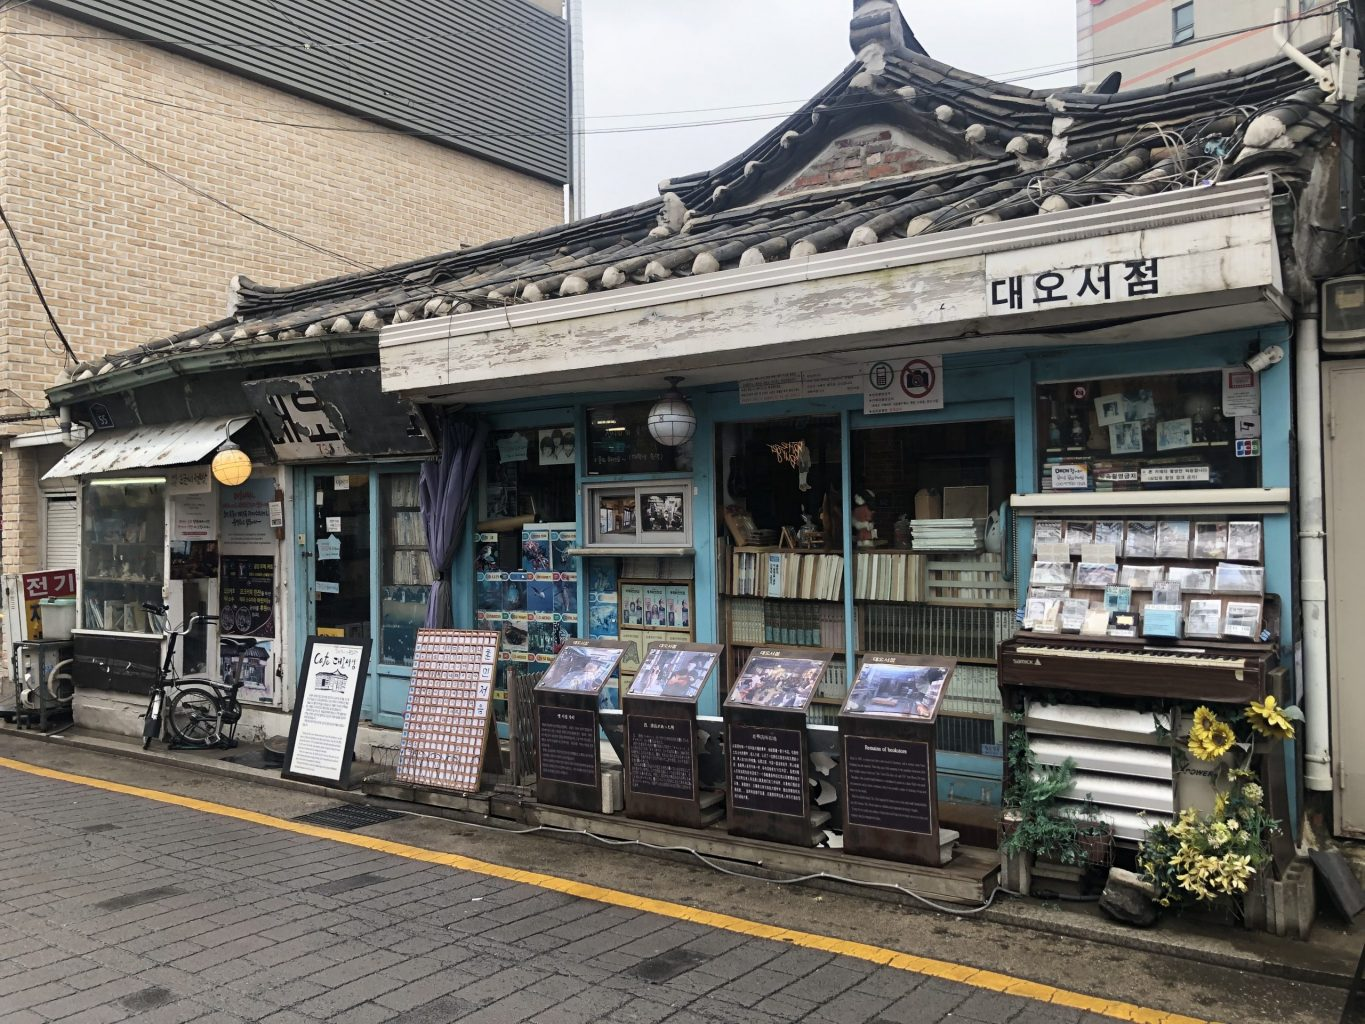 Places to visit in Hyoja-dong, Seochon